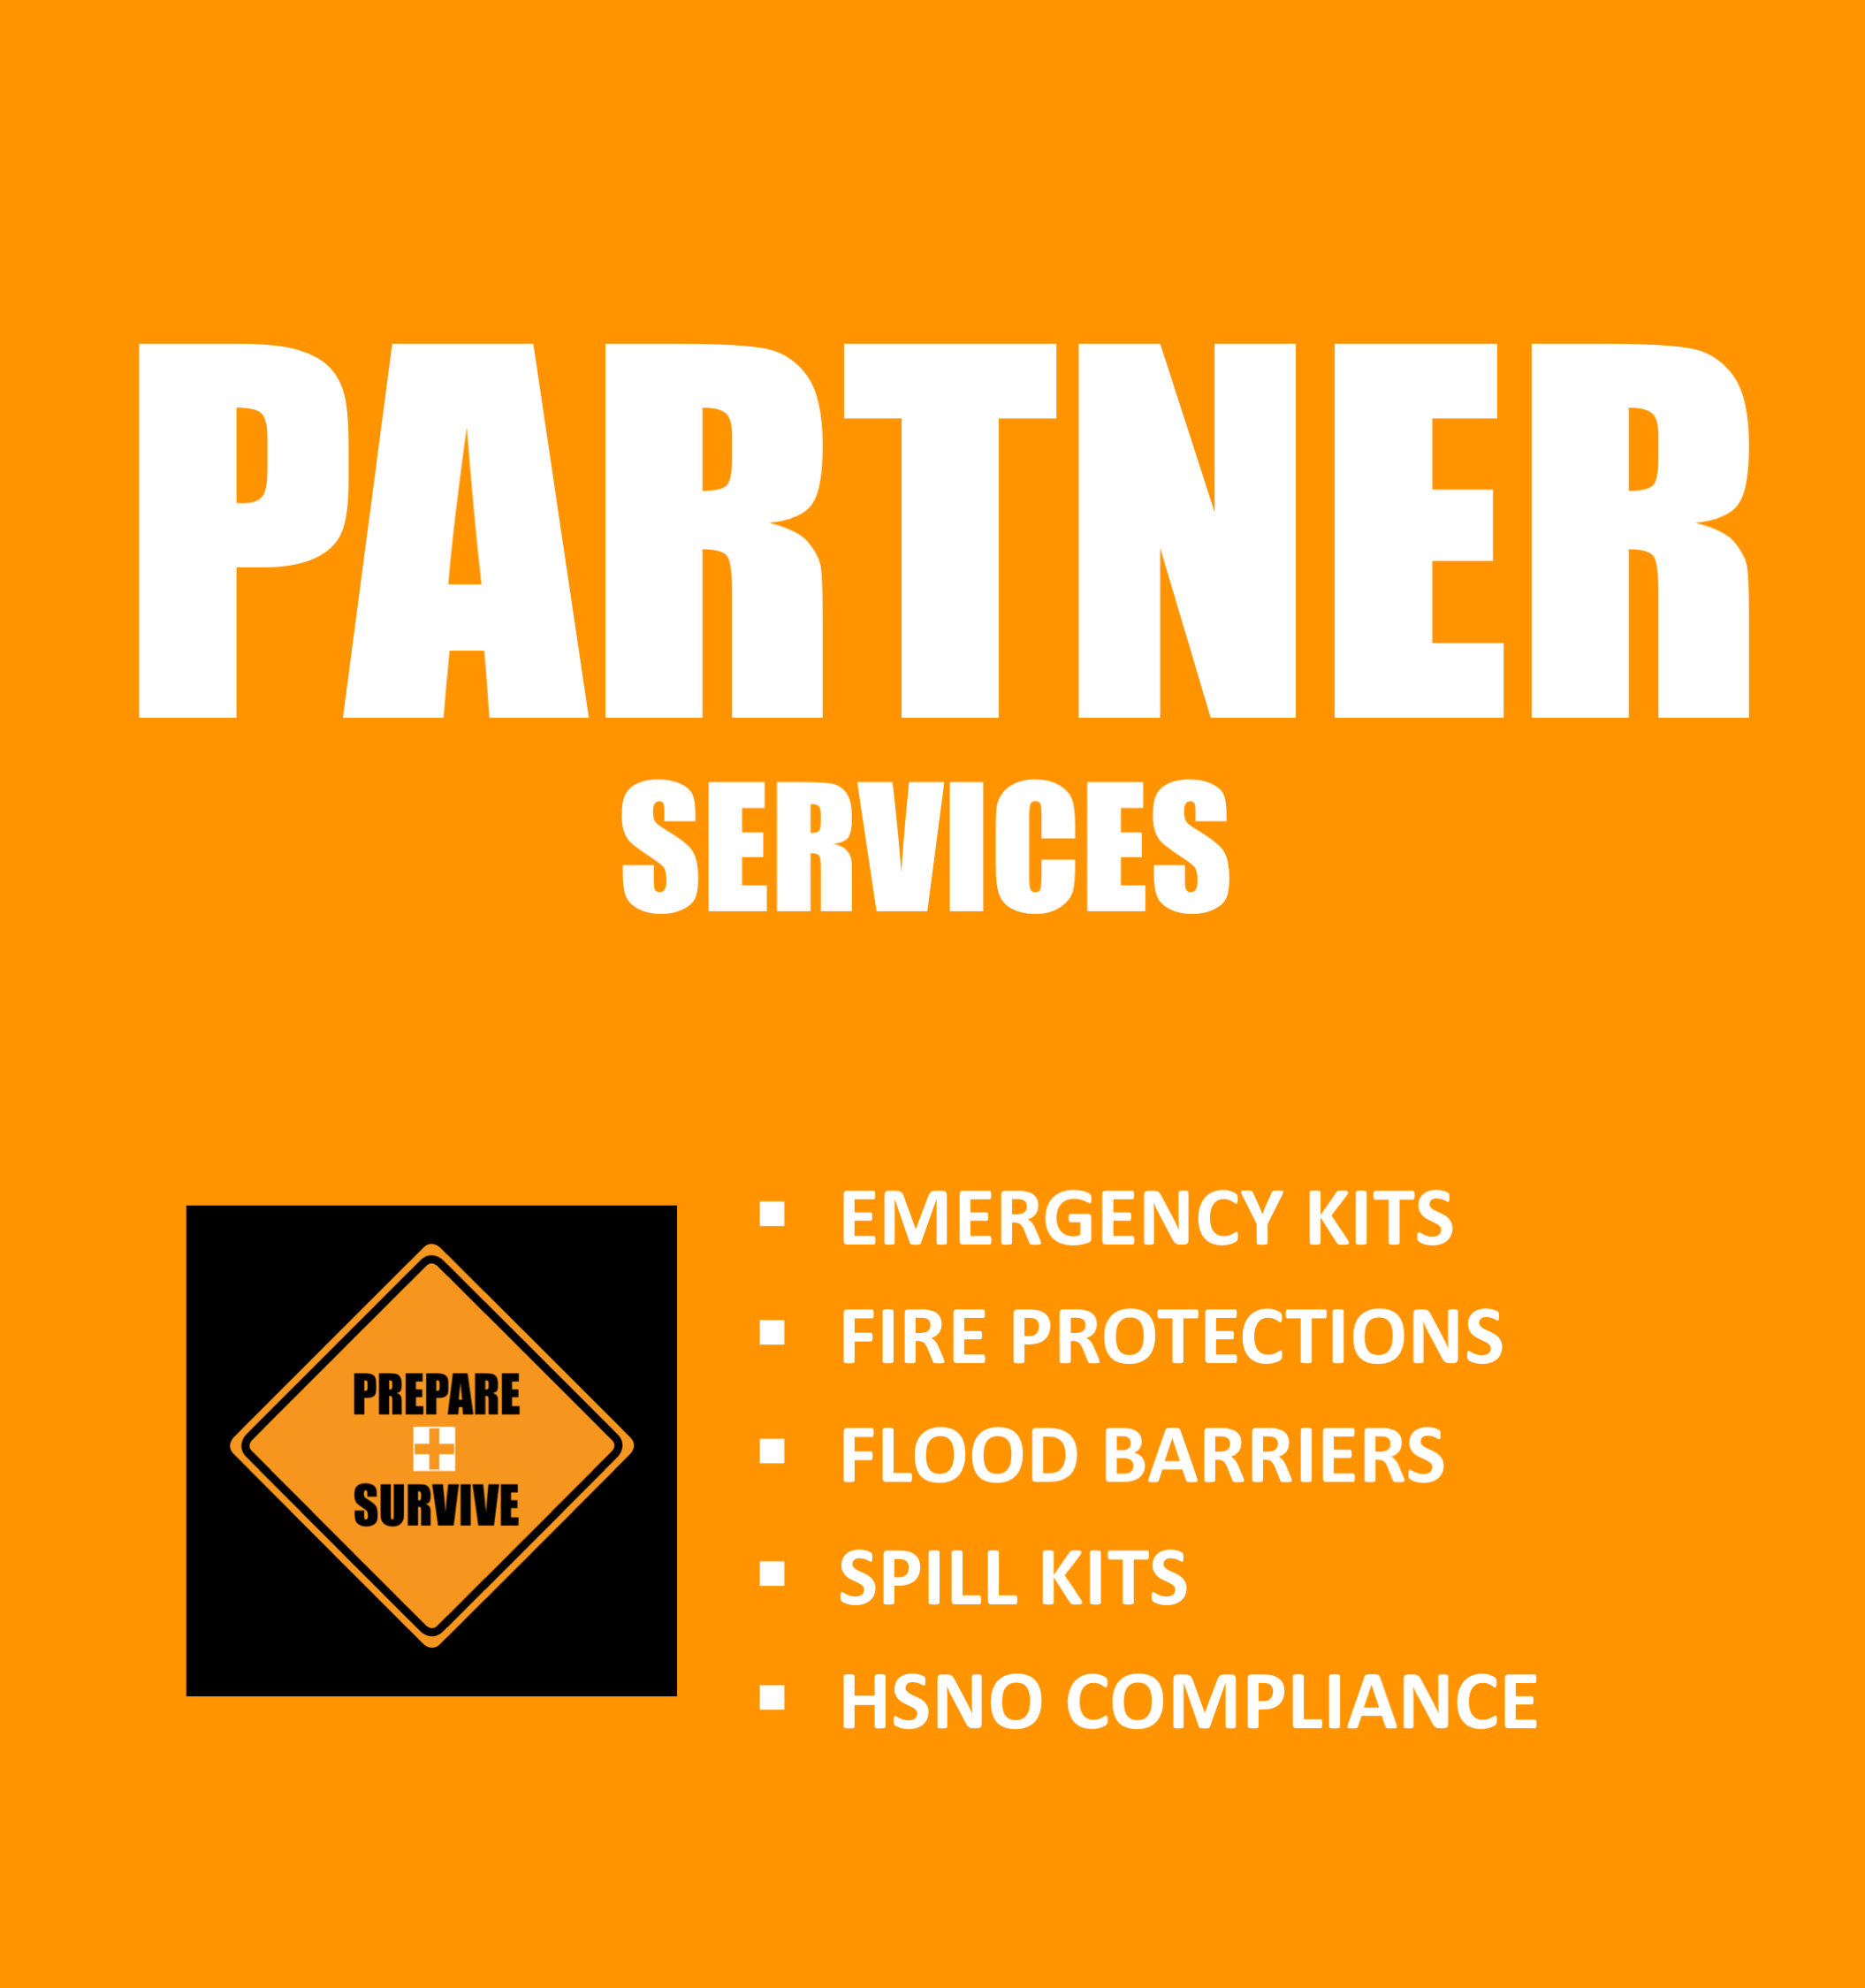 panel-partner-services.png